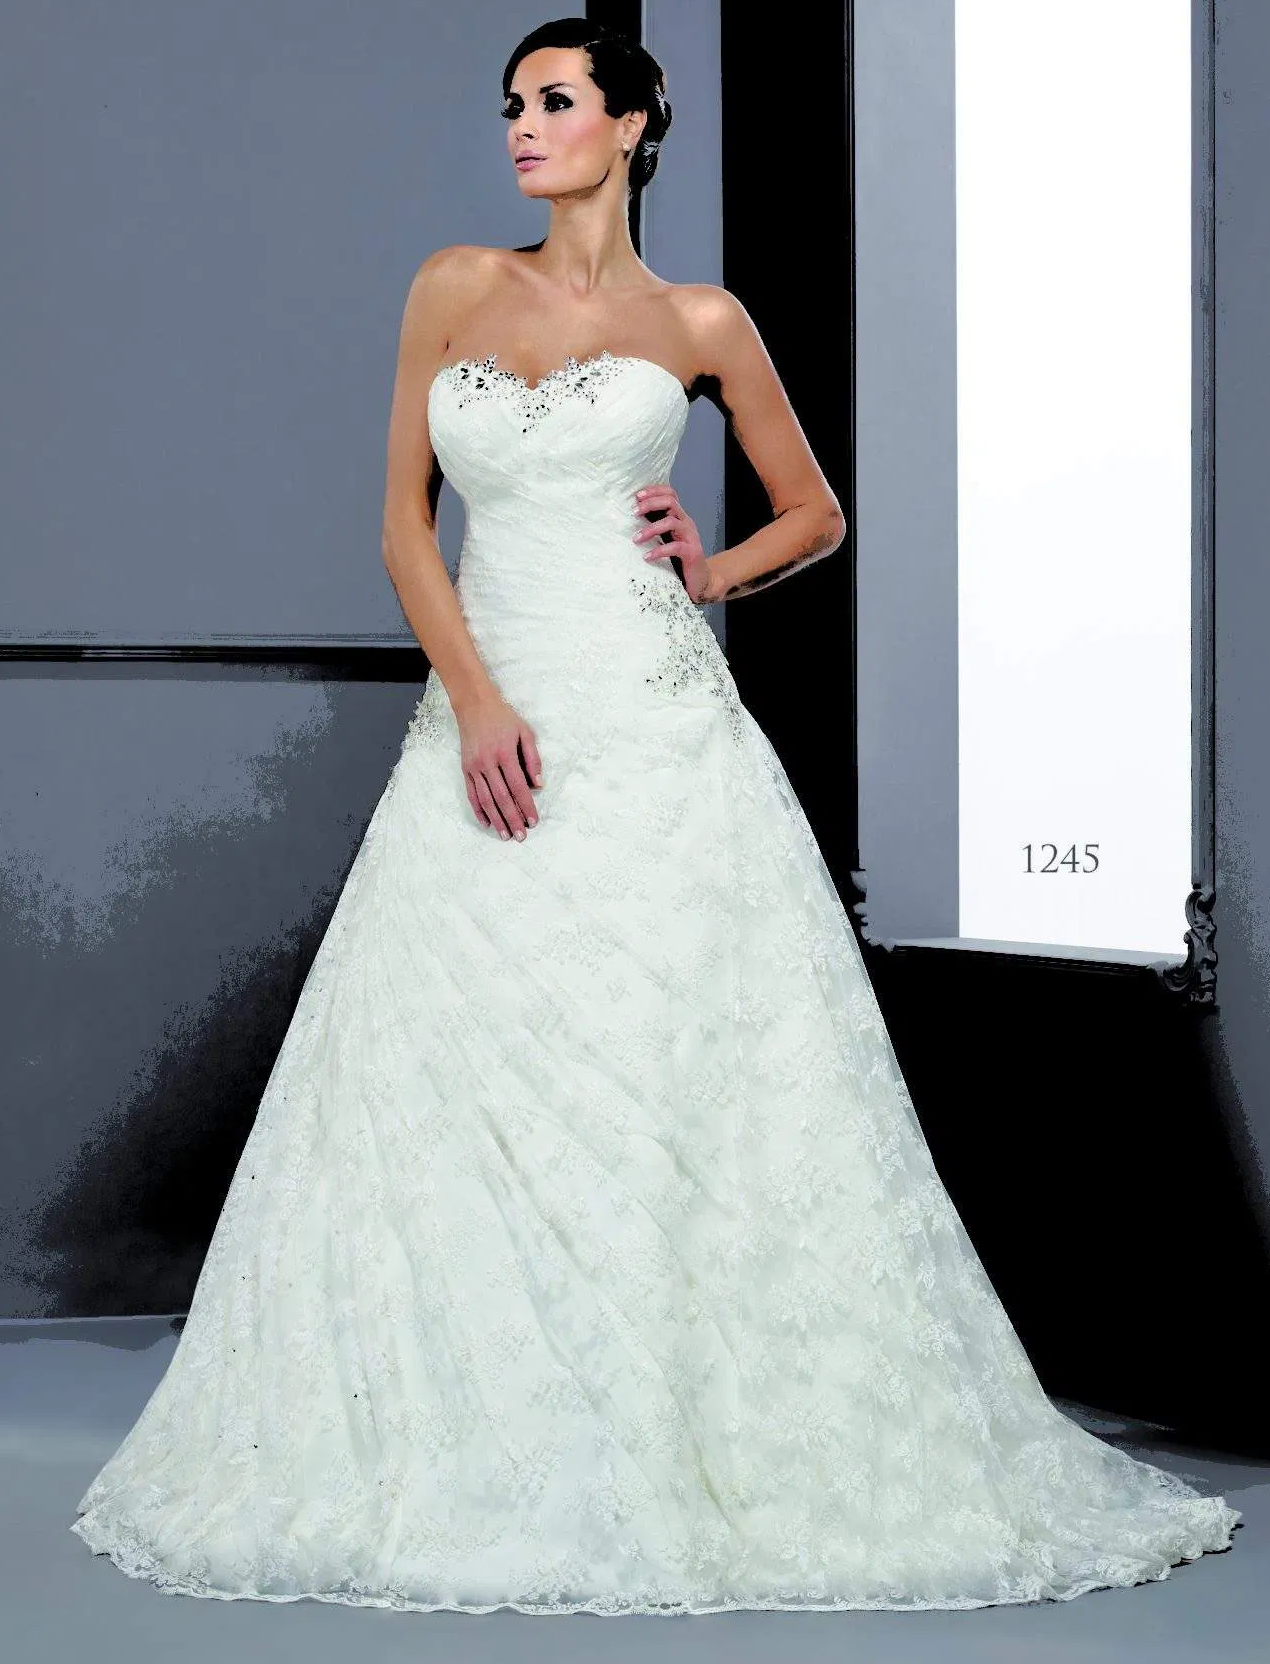 Wedding dress bling The Beaded Applicae on The Ruched Sweetheart Off The Shoulder Bodice Bridal Gown